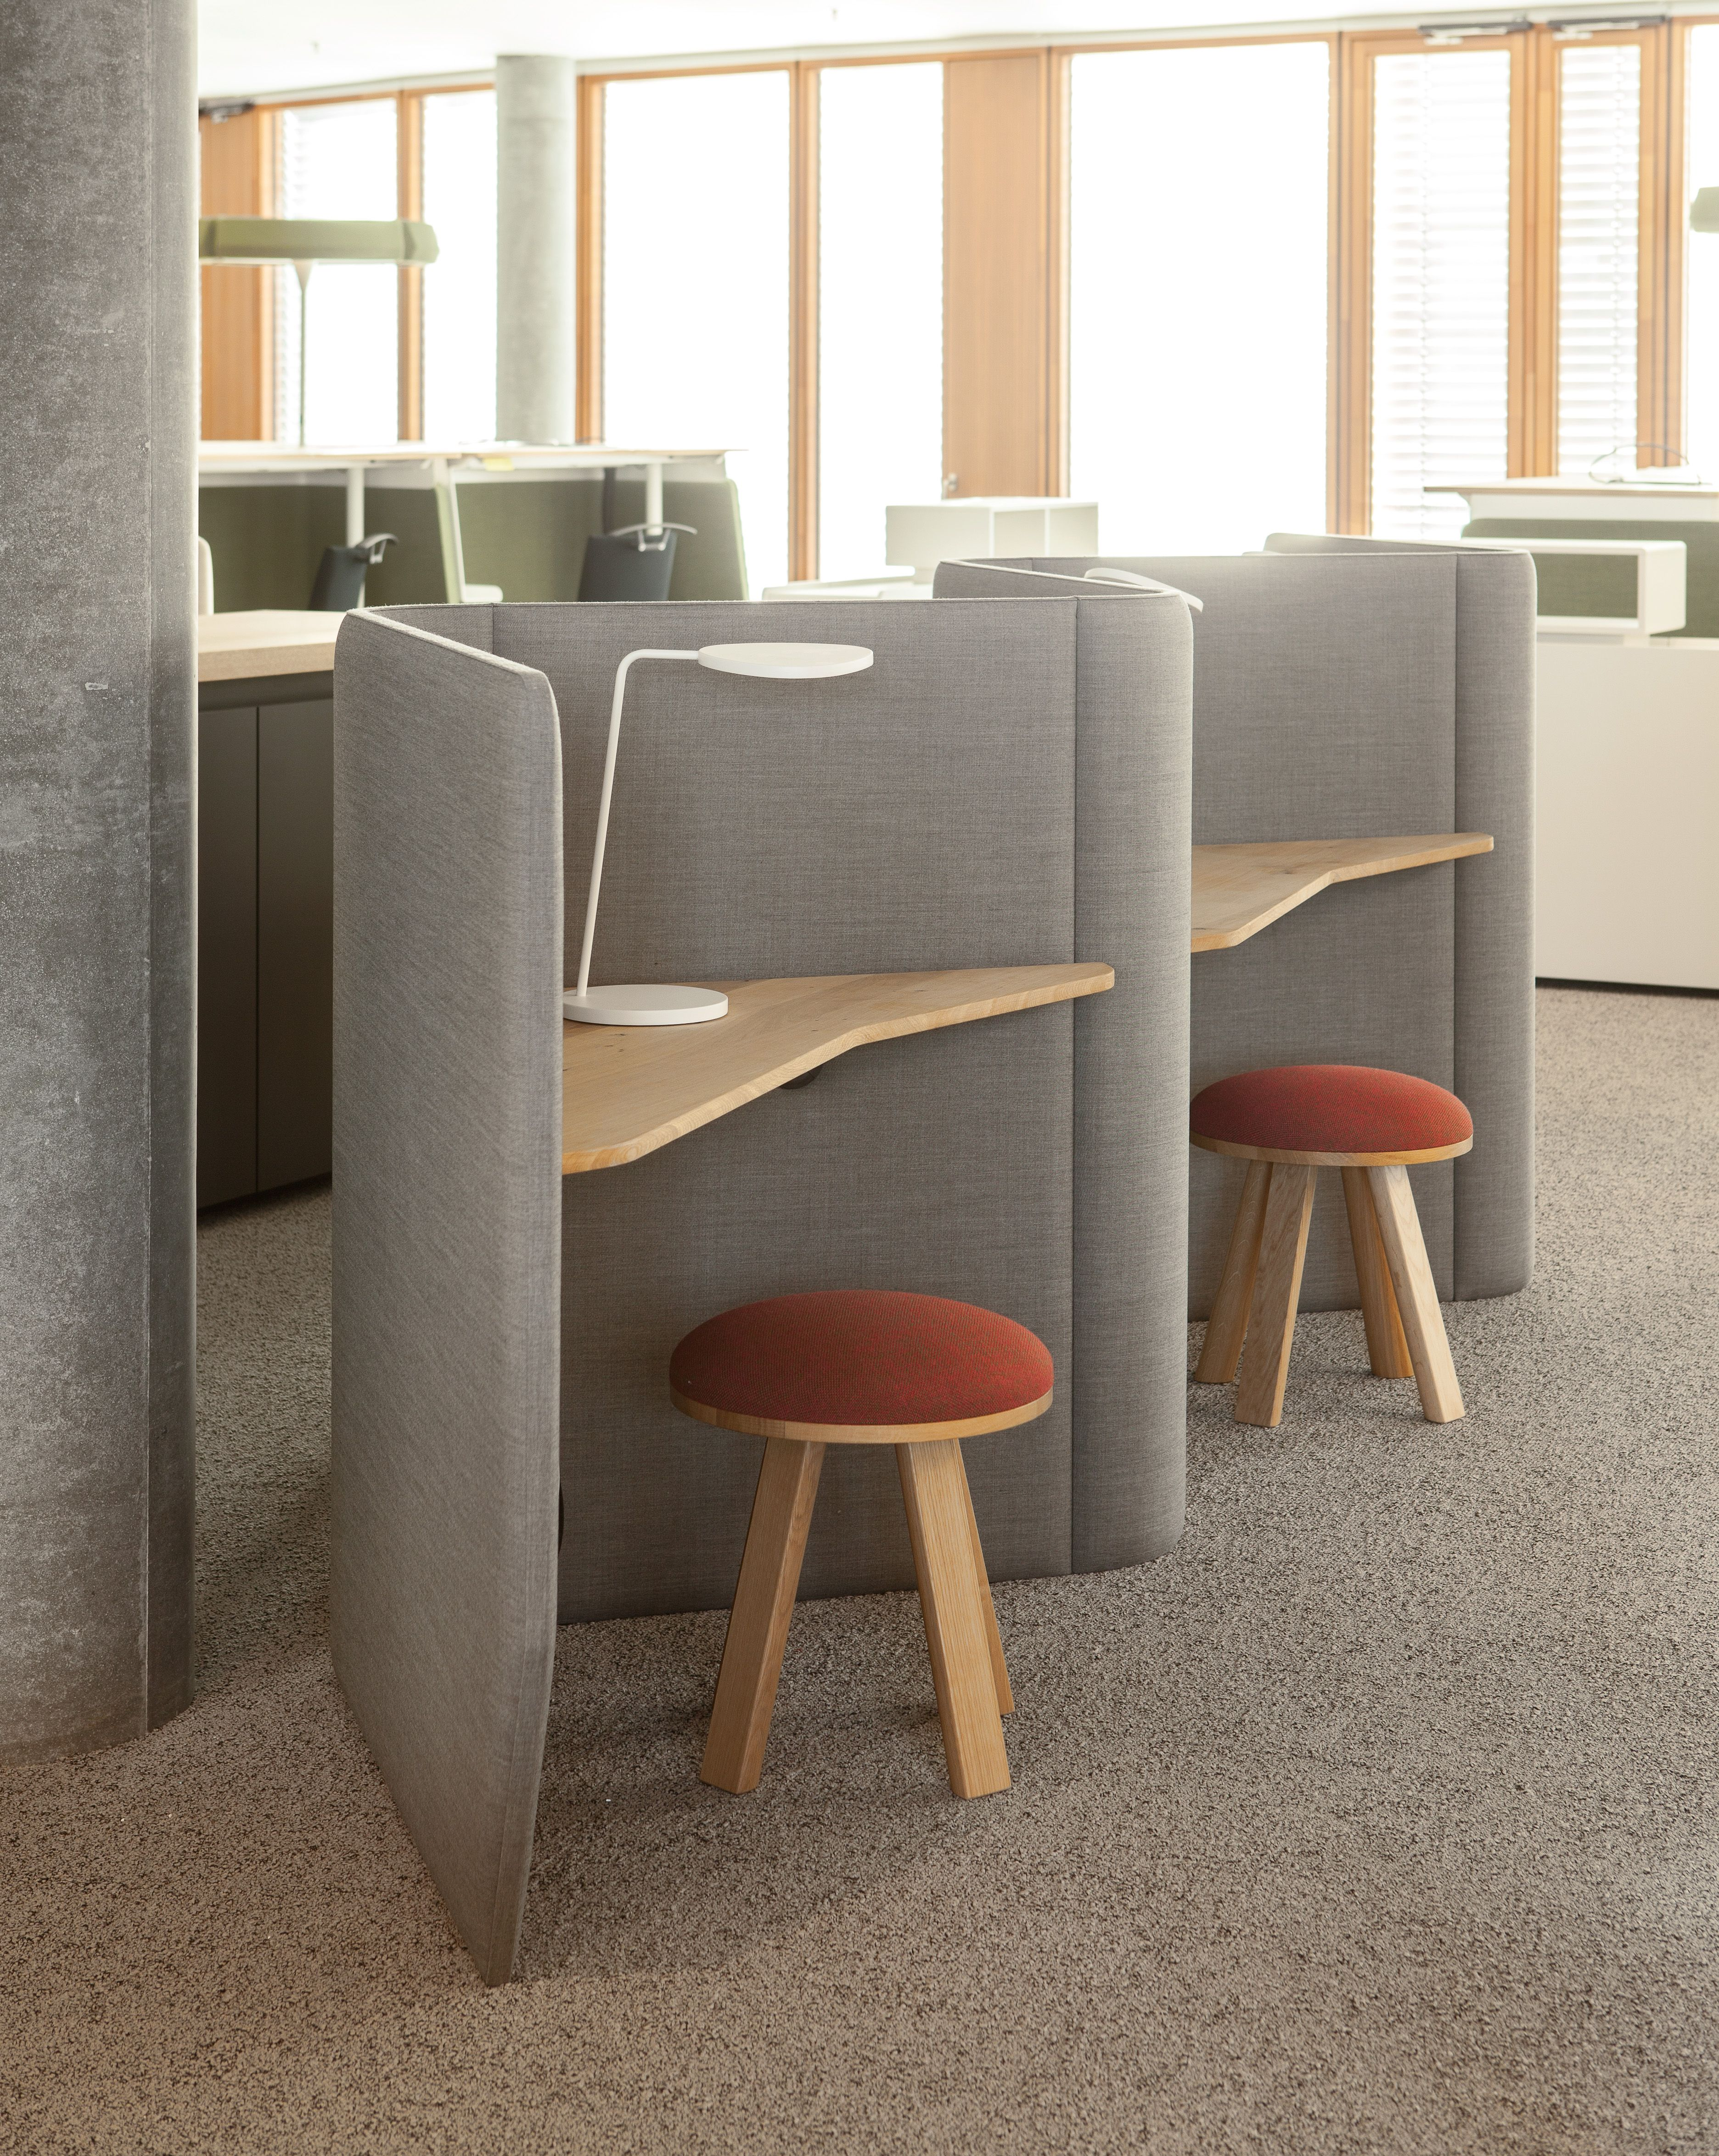 Buzziville commercial grade furniture systems - Commercial grade living room furniture ...